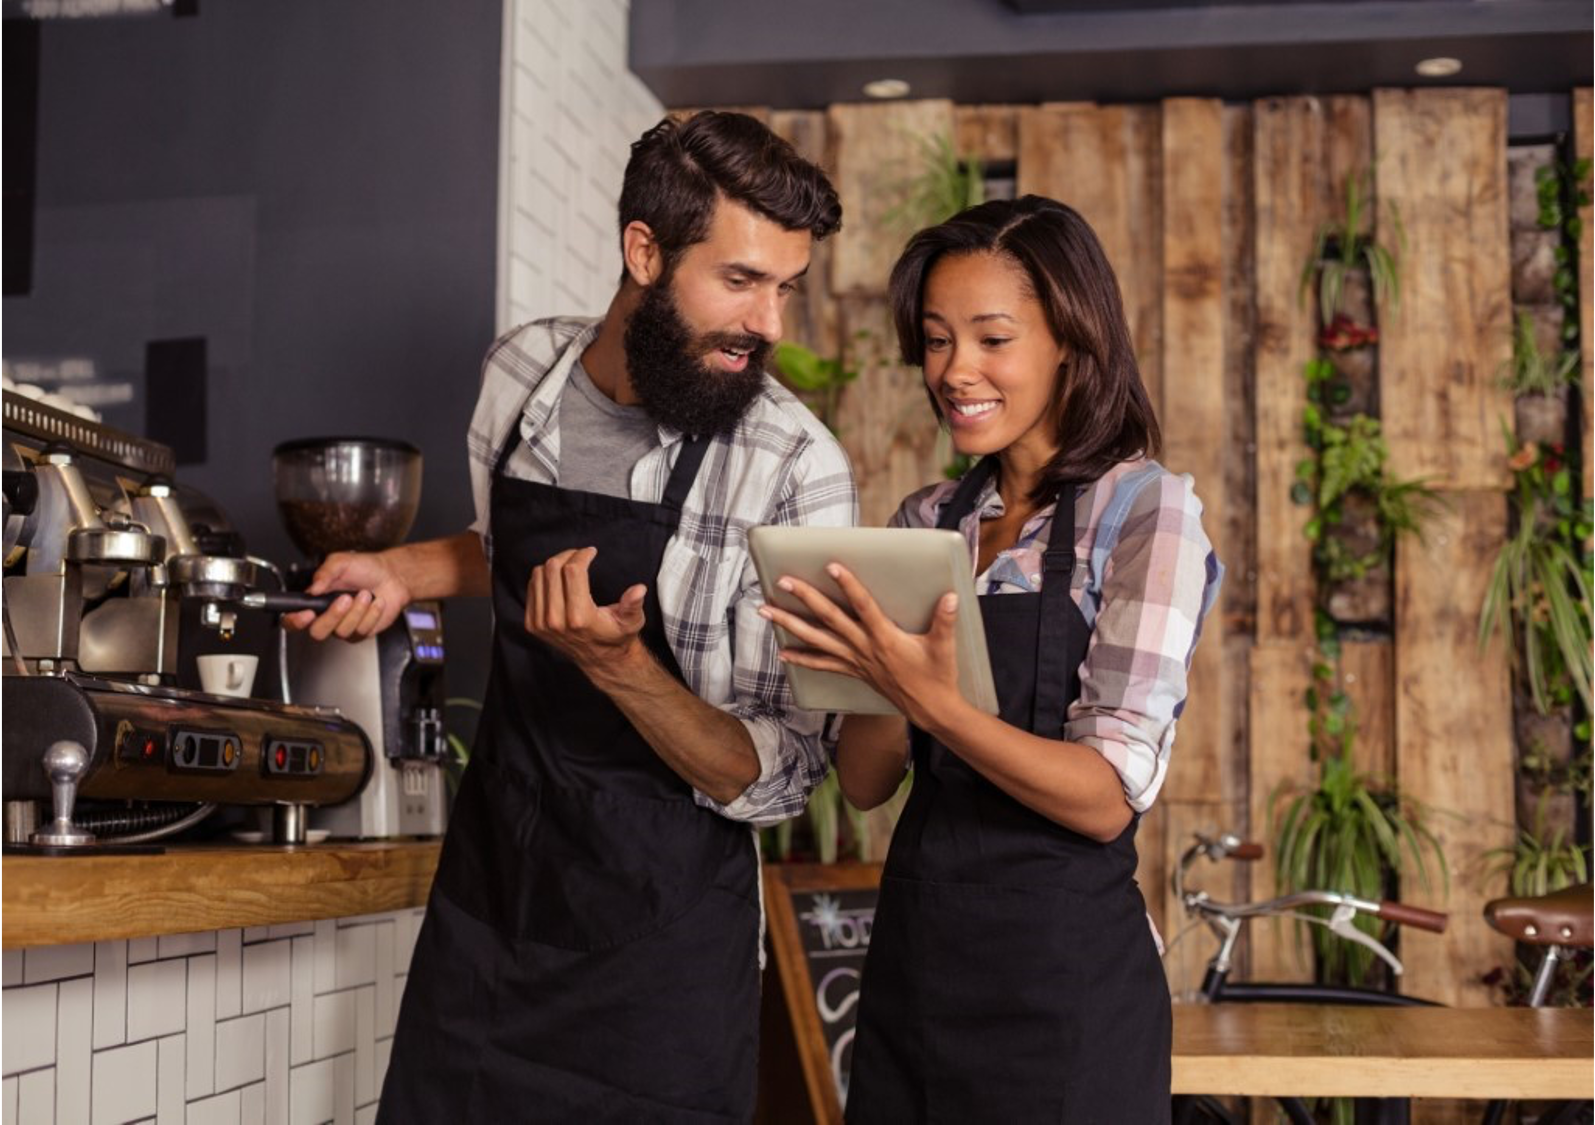 Marketing to your customer in gastronomy and hospitality